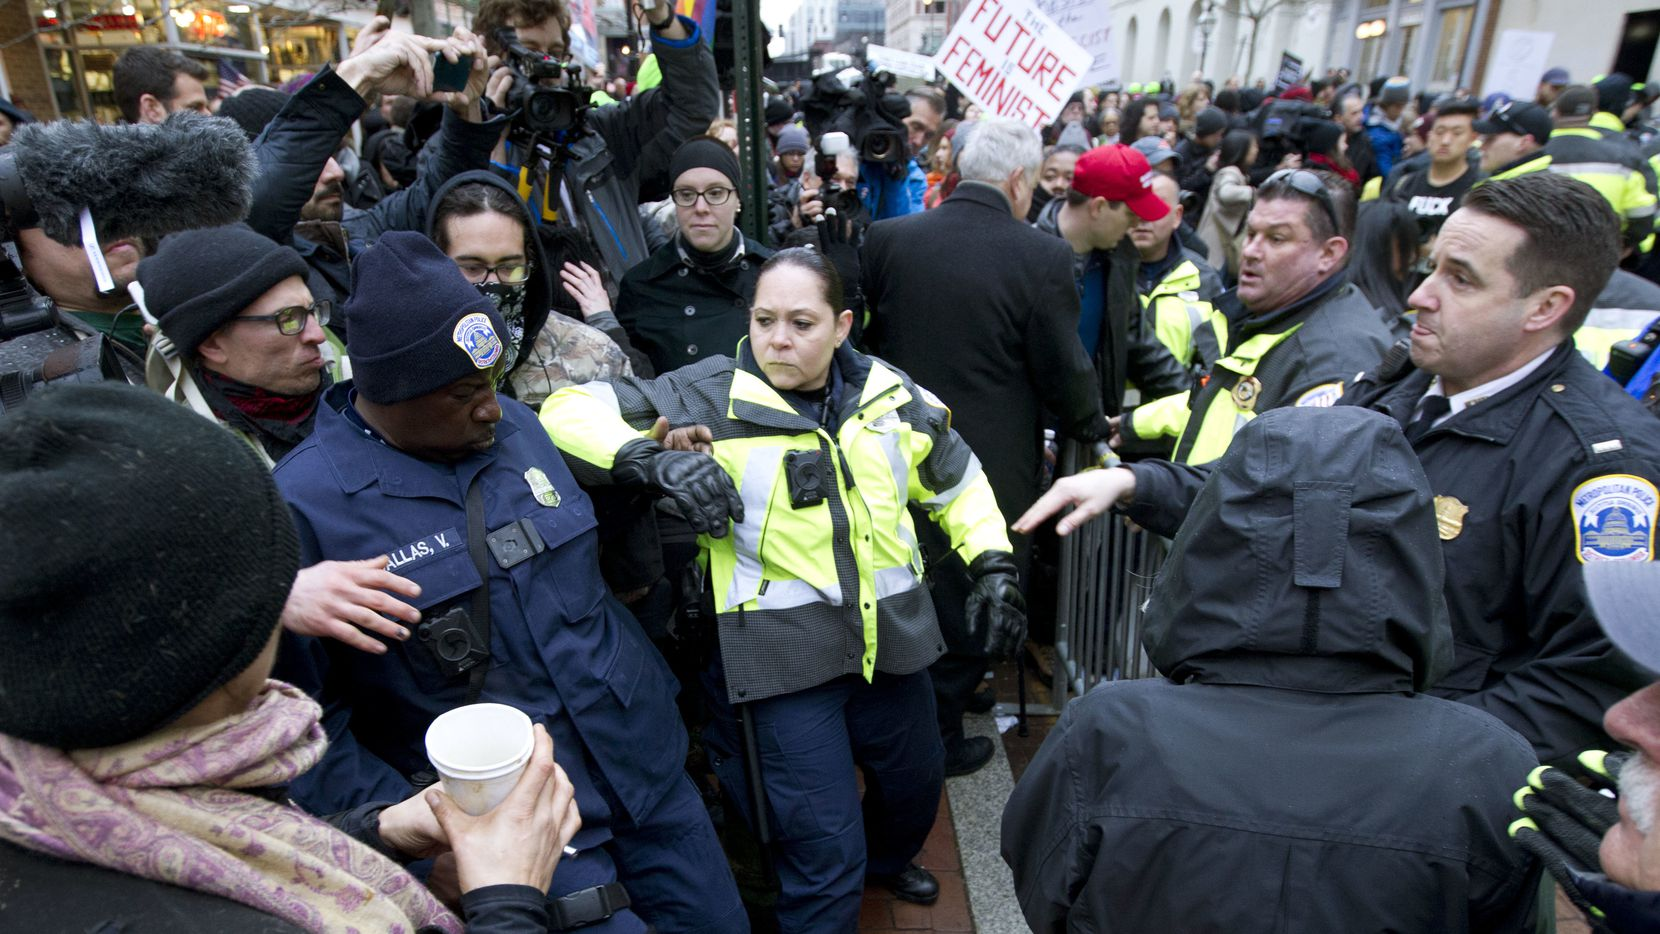 Police push back demonstrators attempting to block people entering a security checkpoint, Friday, Jan. 20, 2017, ahead of President-elect Donald Trump's inauguration in Washington. (AP Photo/Jose Luis Magana)